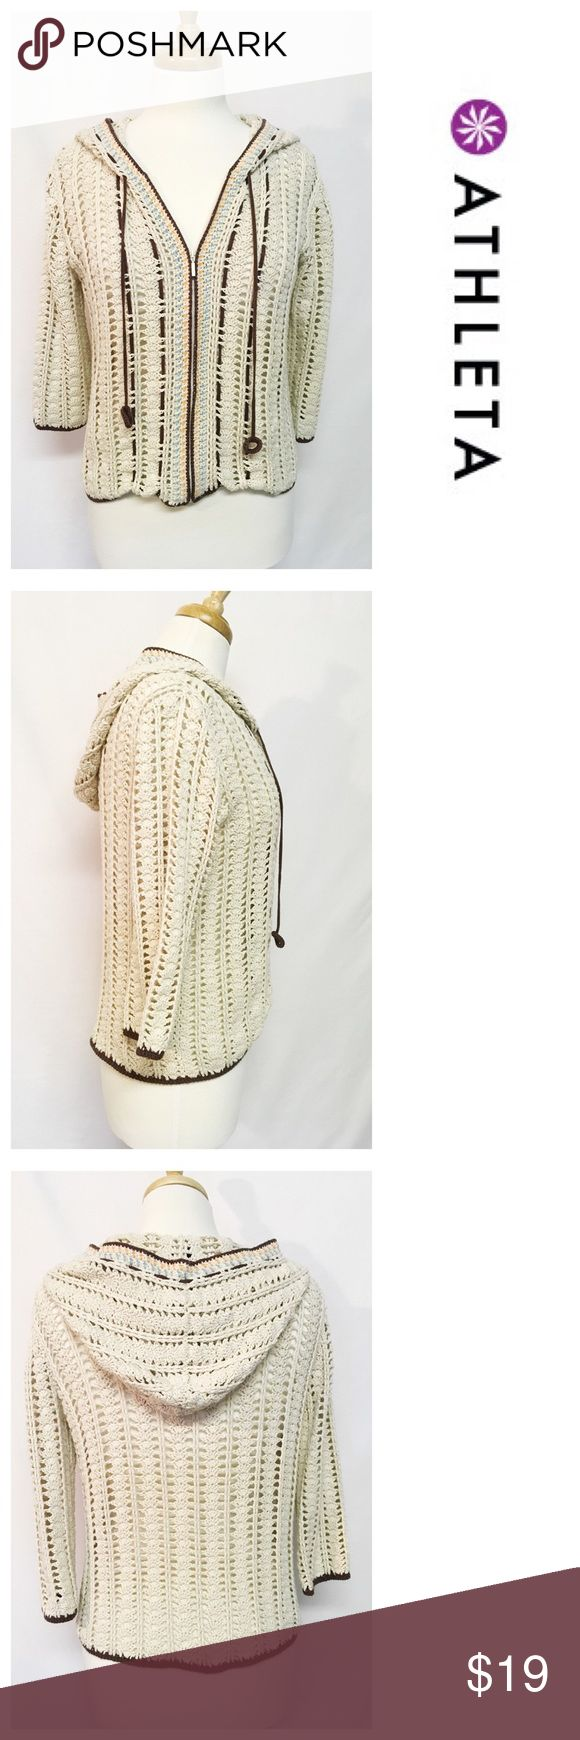 Crochet Beige Zip Up Cardigan by Athleta ~~ Zip up Beige Crochet Cardigan w/ hood by Athleta ~~ Size S ~~ Bust 38 ~~ Waist 36 ~~ Length 20 ~~ 100% cotton ~~ Brown/orange/light blue detail ~~ 3/4 sleeve ~~ Very good condition, no flaws ~~ All clothing comes freshly laundered, hand washed or dry cleaned unless NWT ~~ NO TRADES PLEASE 💕 Athleta Sweaters Cardigans